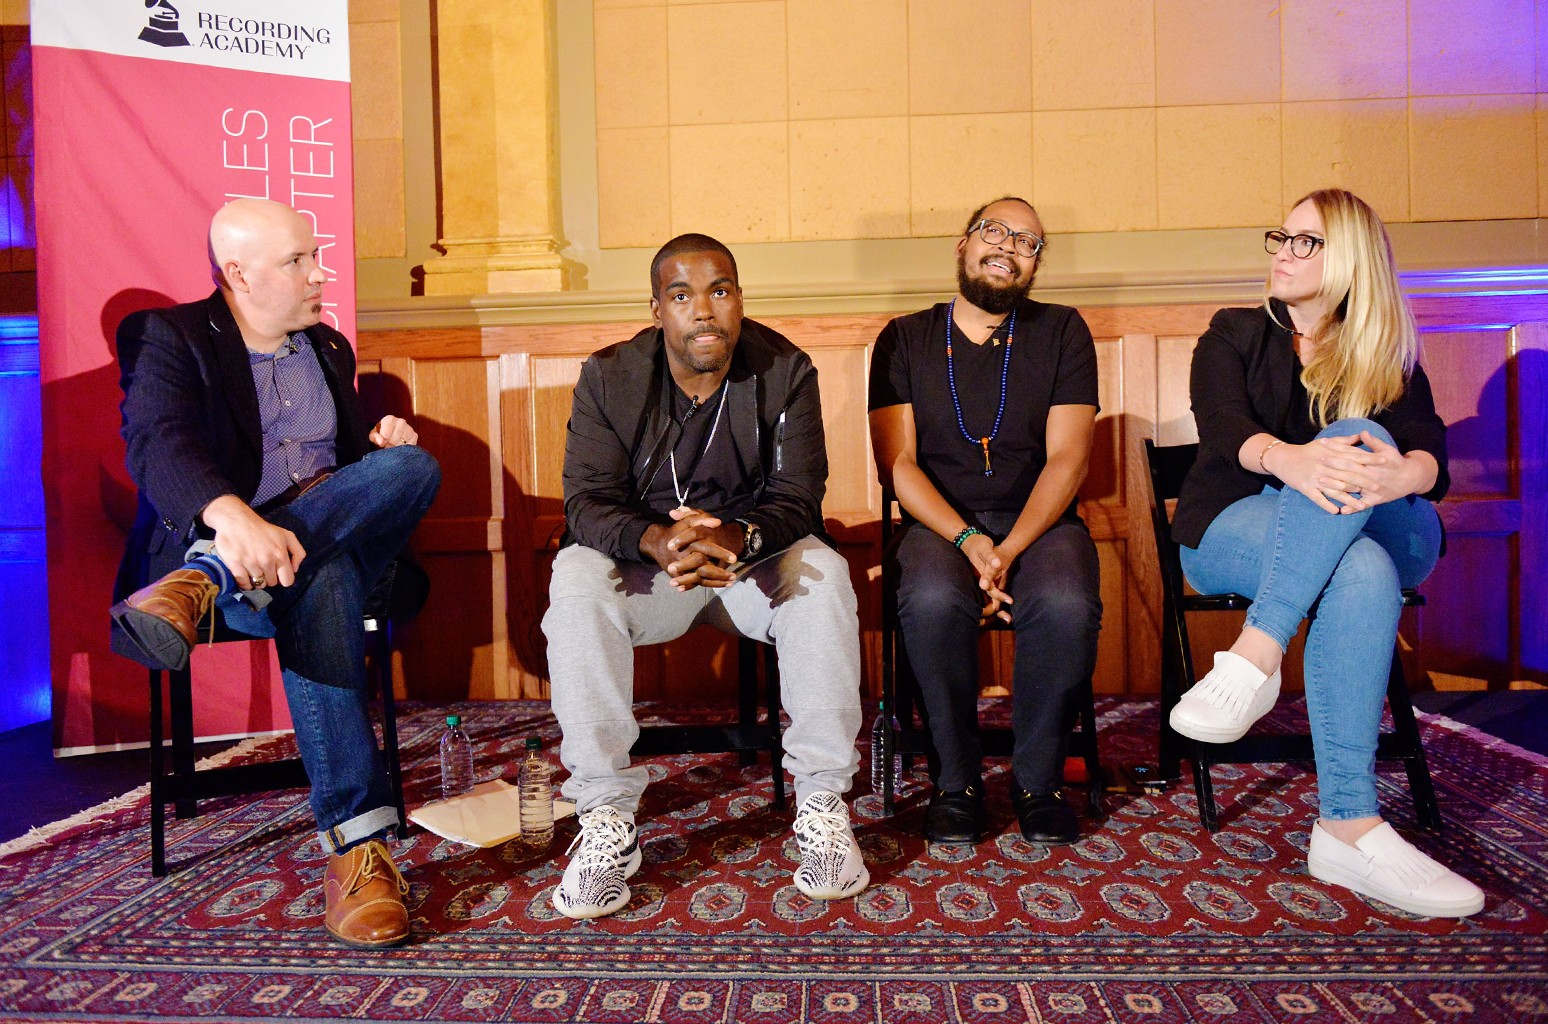 Senior Director, Advocacy & Public Policy for The Recording Academy Todd Dupler, Producer Rodney Jerkins, Producer Om'Mas Keith and MoZella attend the town hall event held at Village Recorders on Sept. 14, 2017 in Los Angeles.